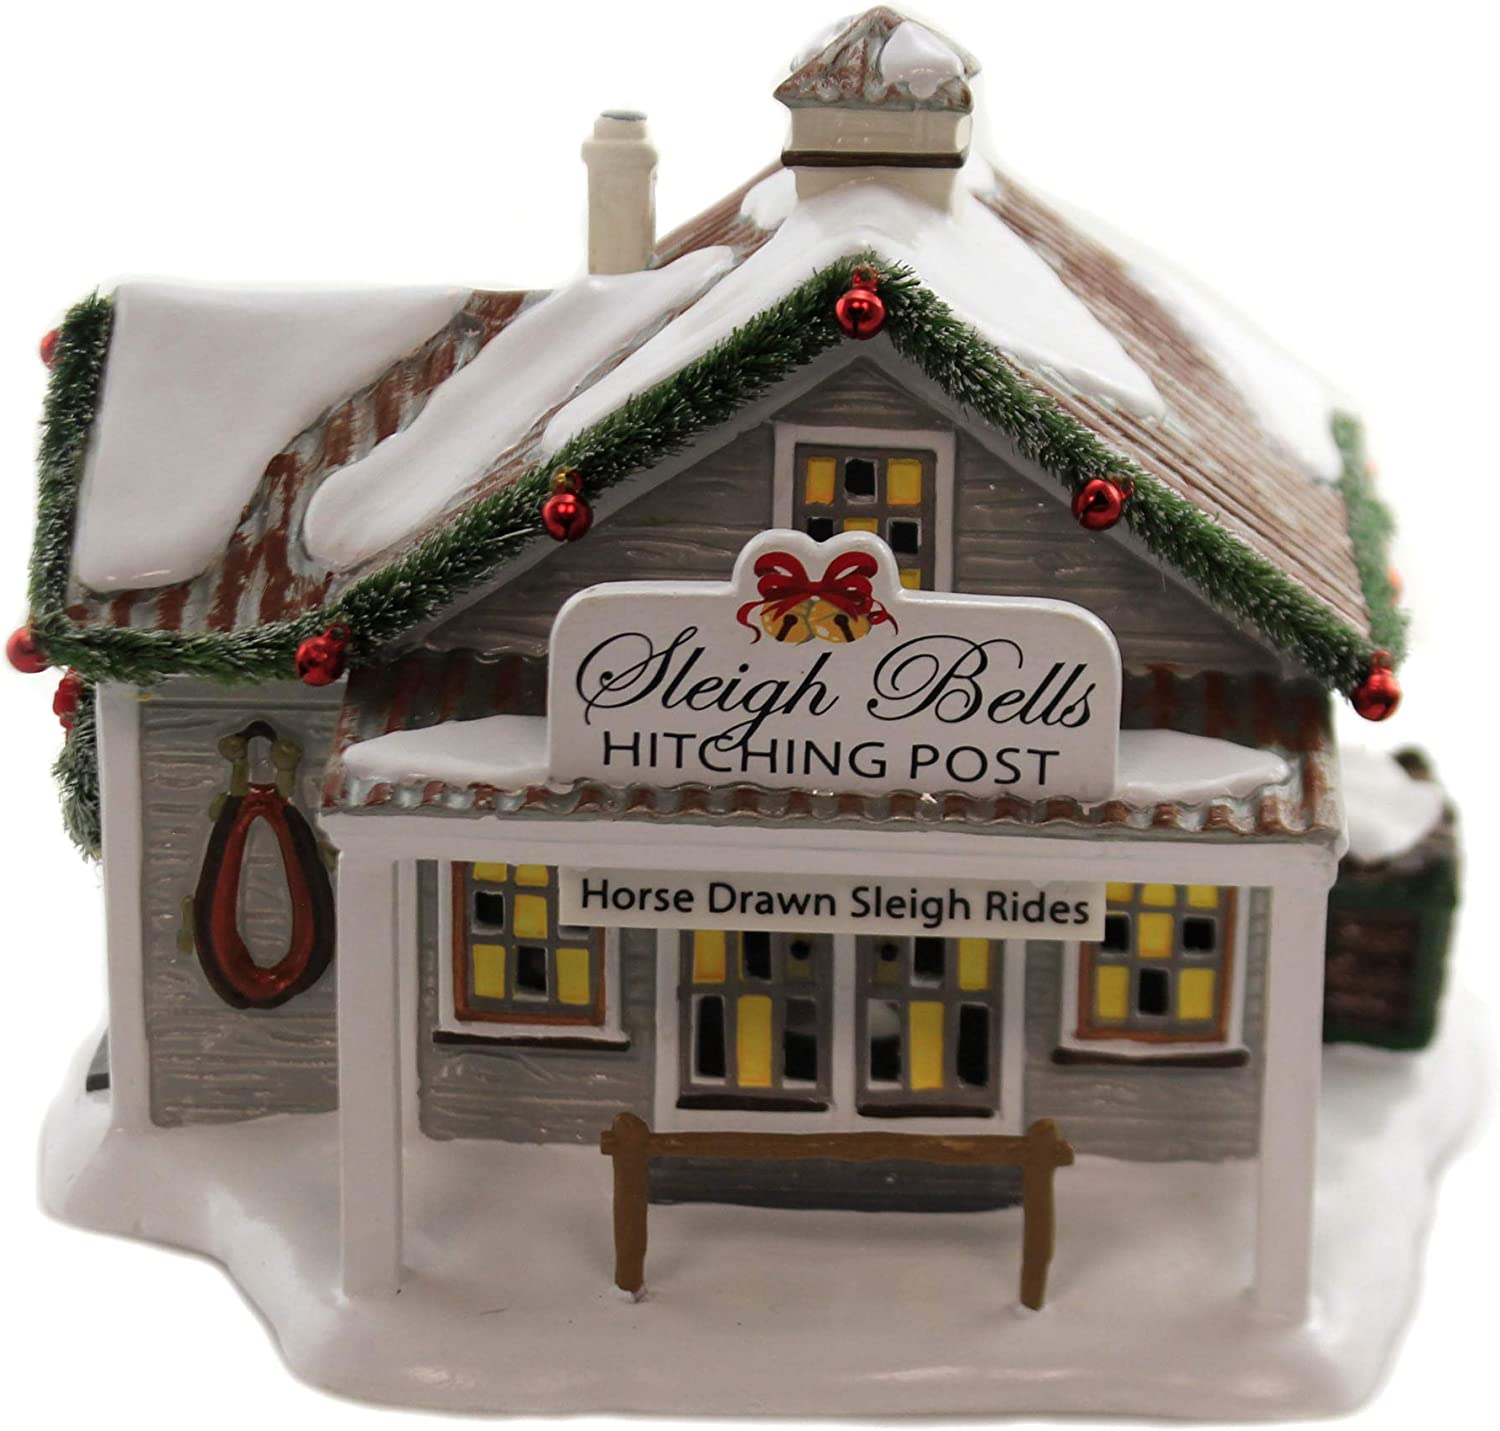 Department 56 Original Snow Village Sleigh Bells Hitching Post Lighted Building, 6.06-inch Height